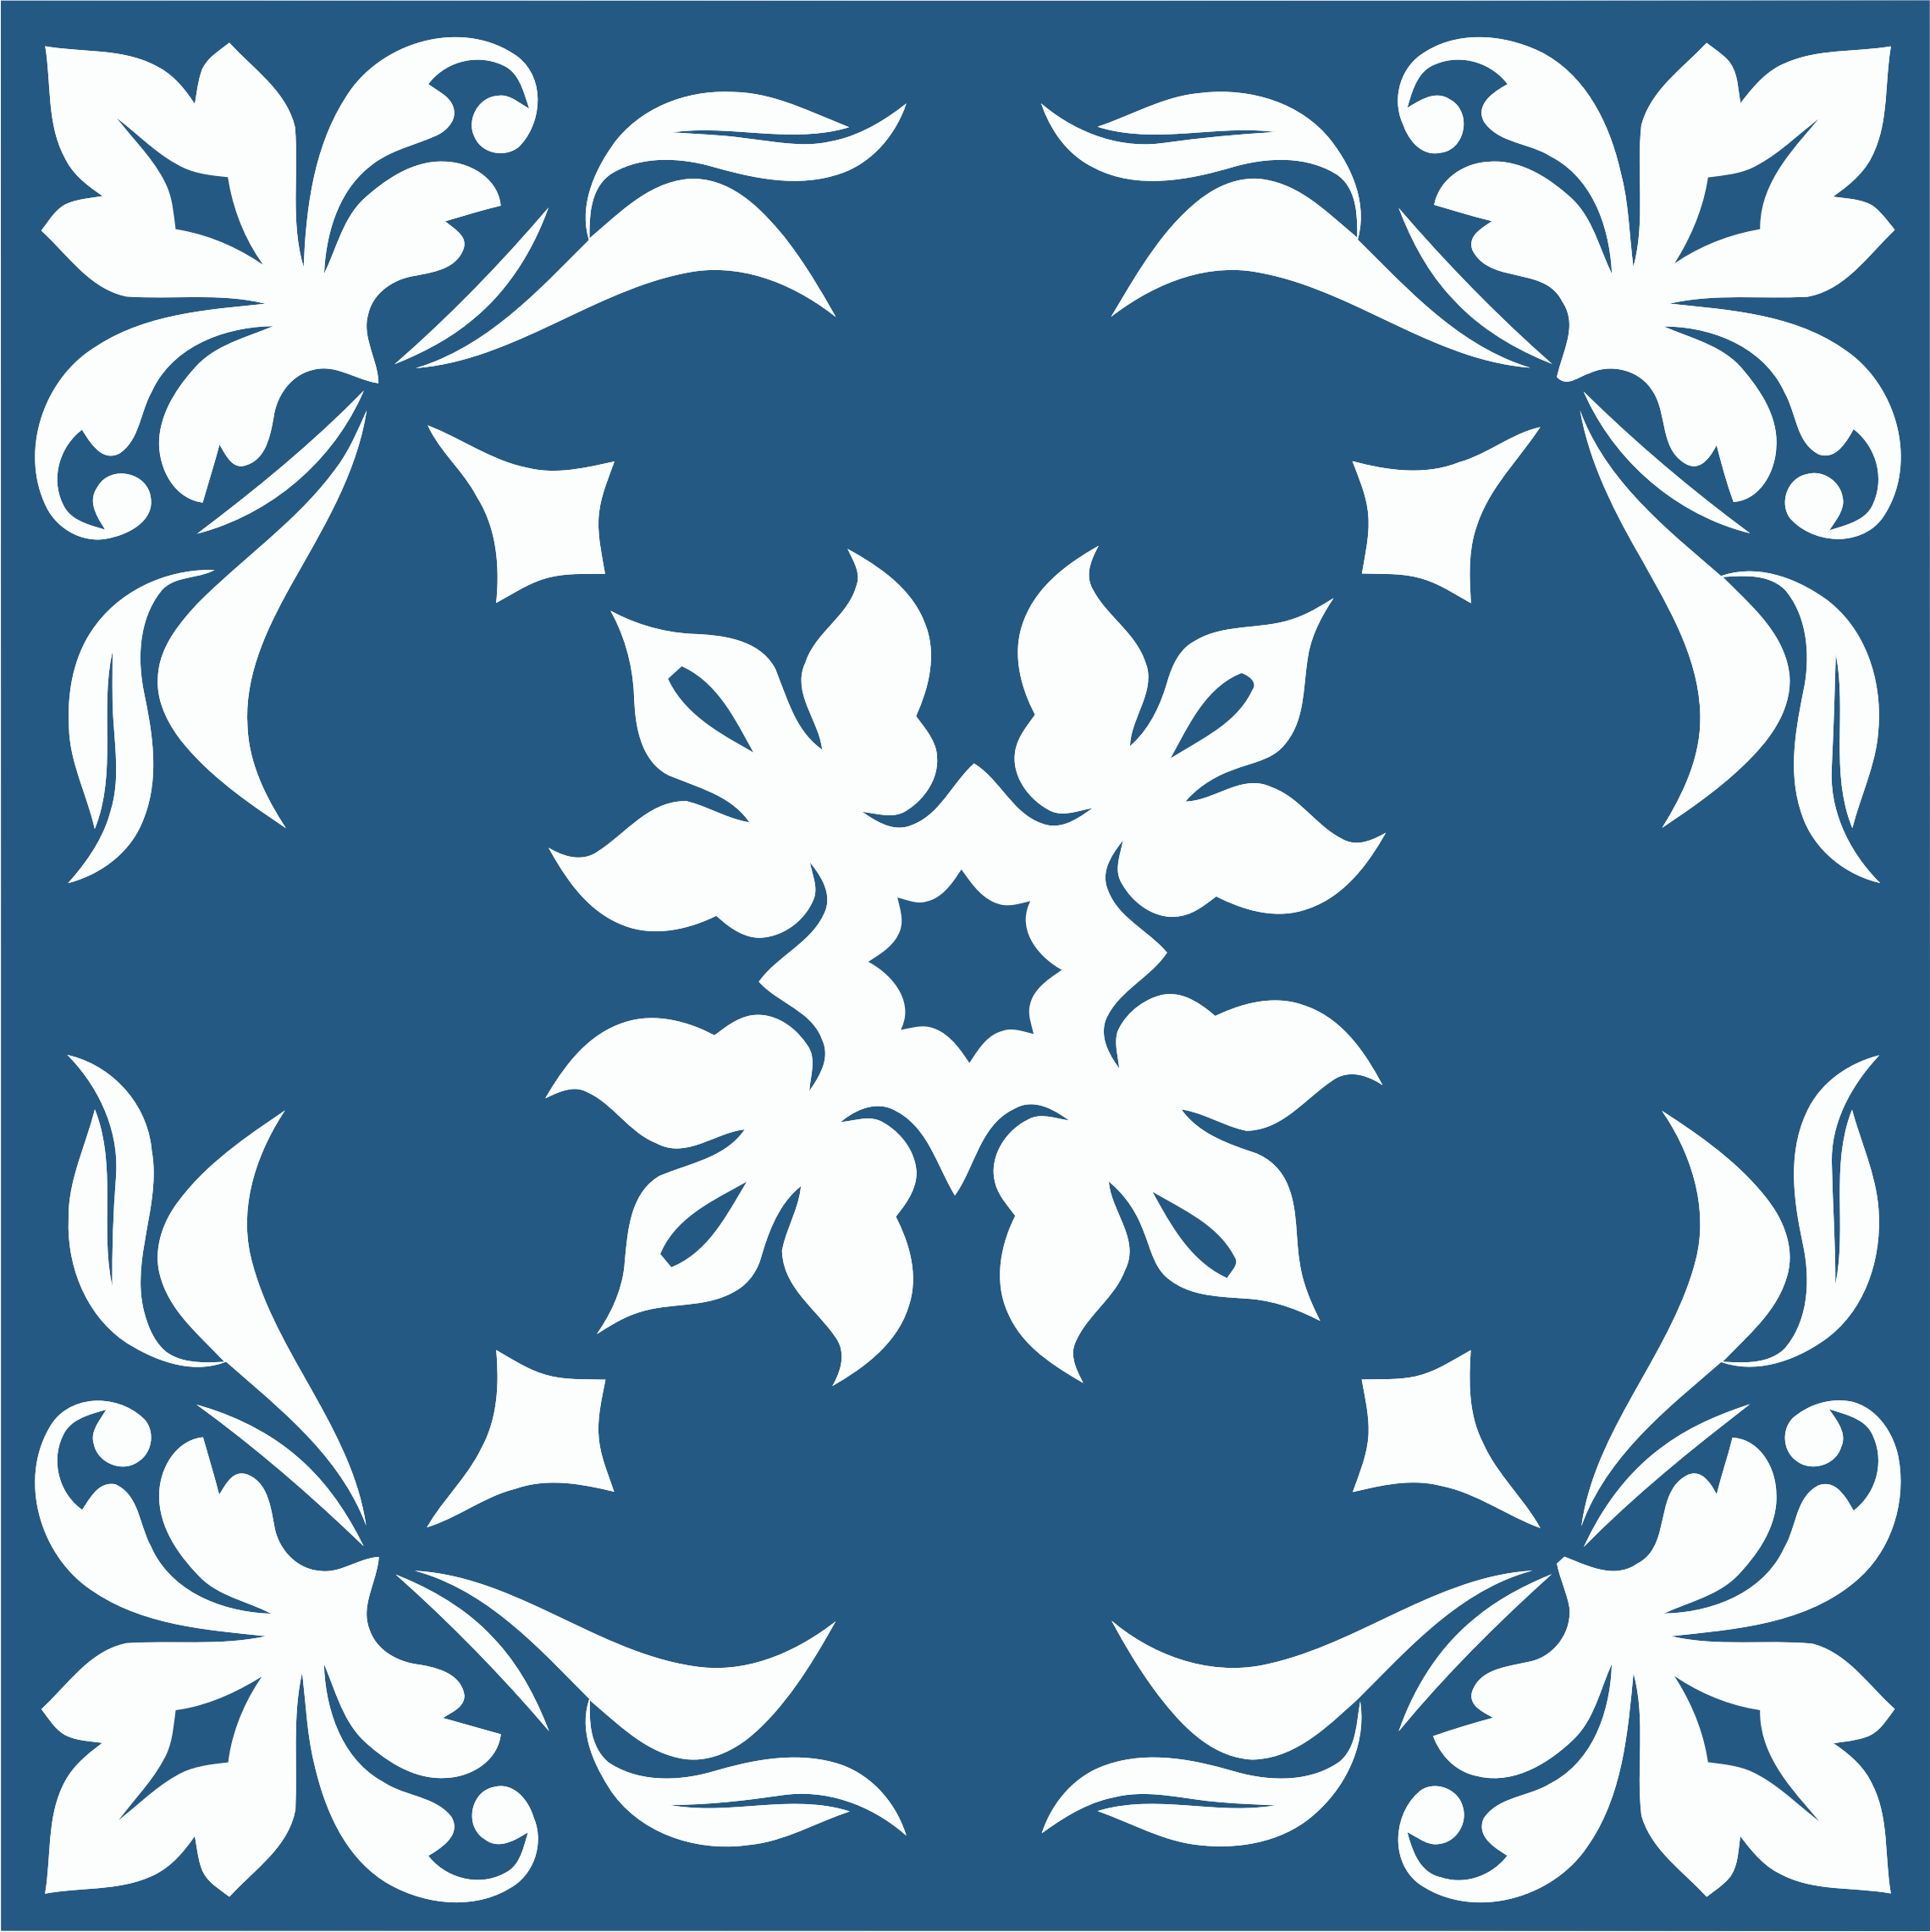 Floral Flourish Tile by GDJ